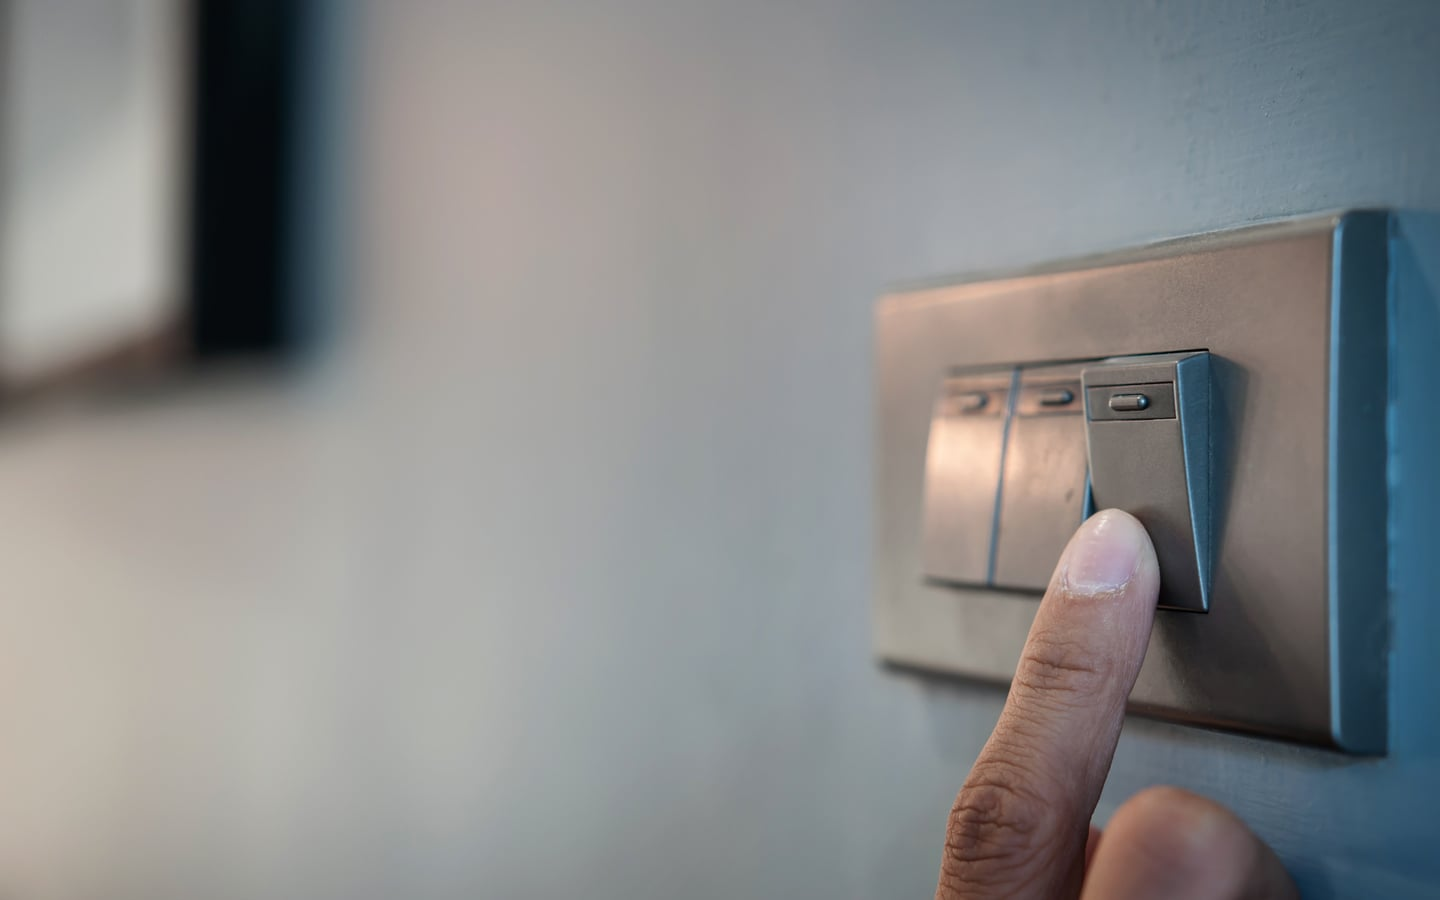 It's important to make energy efficient decisions for your home.